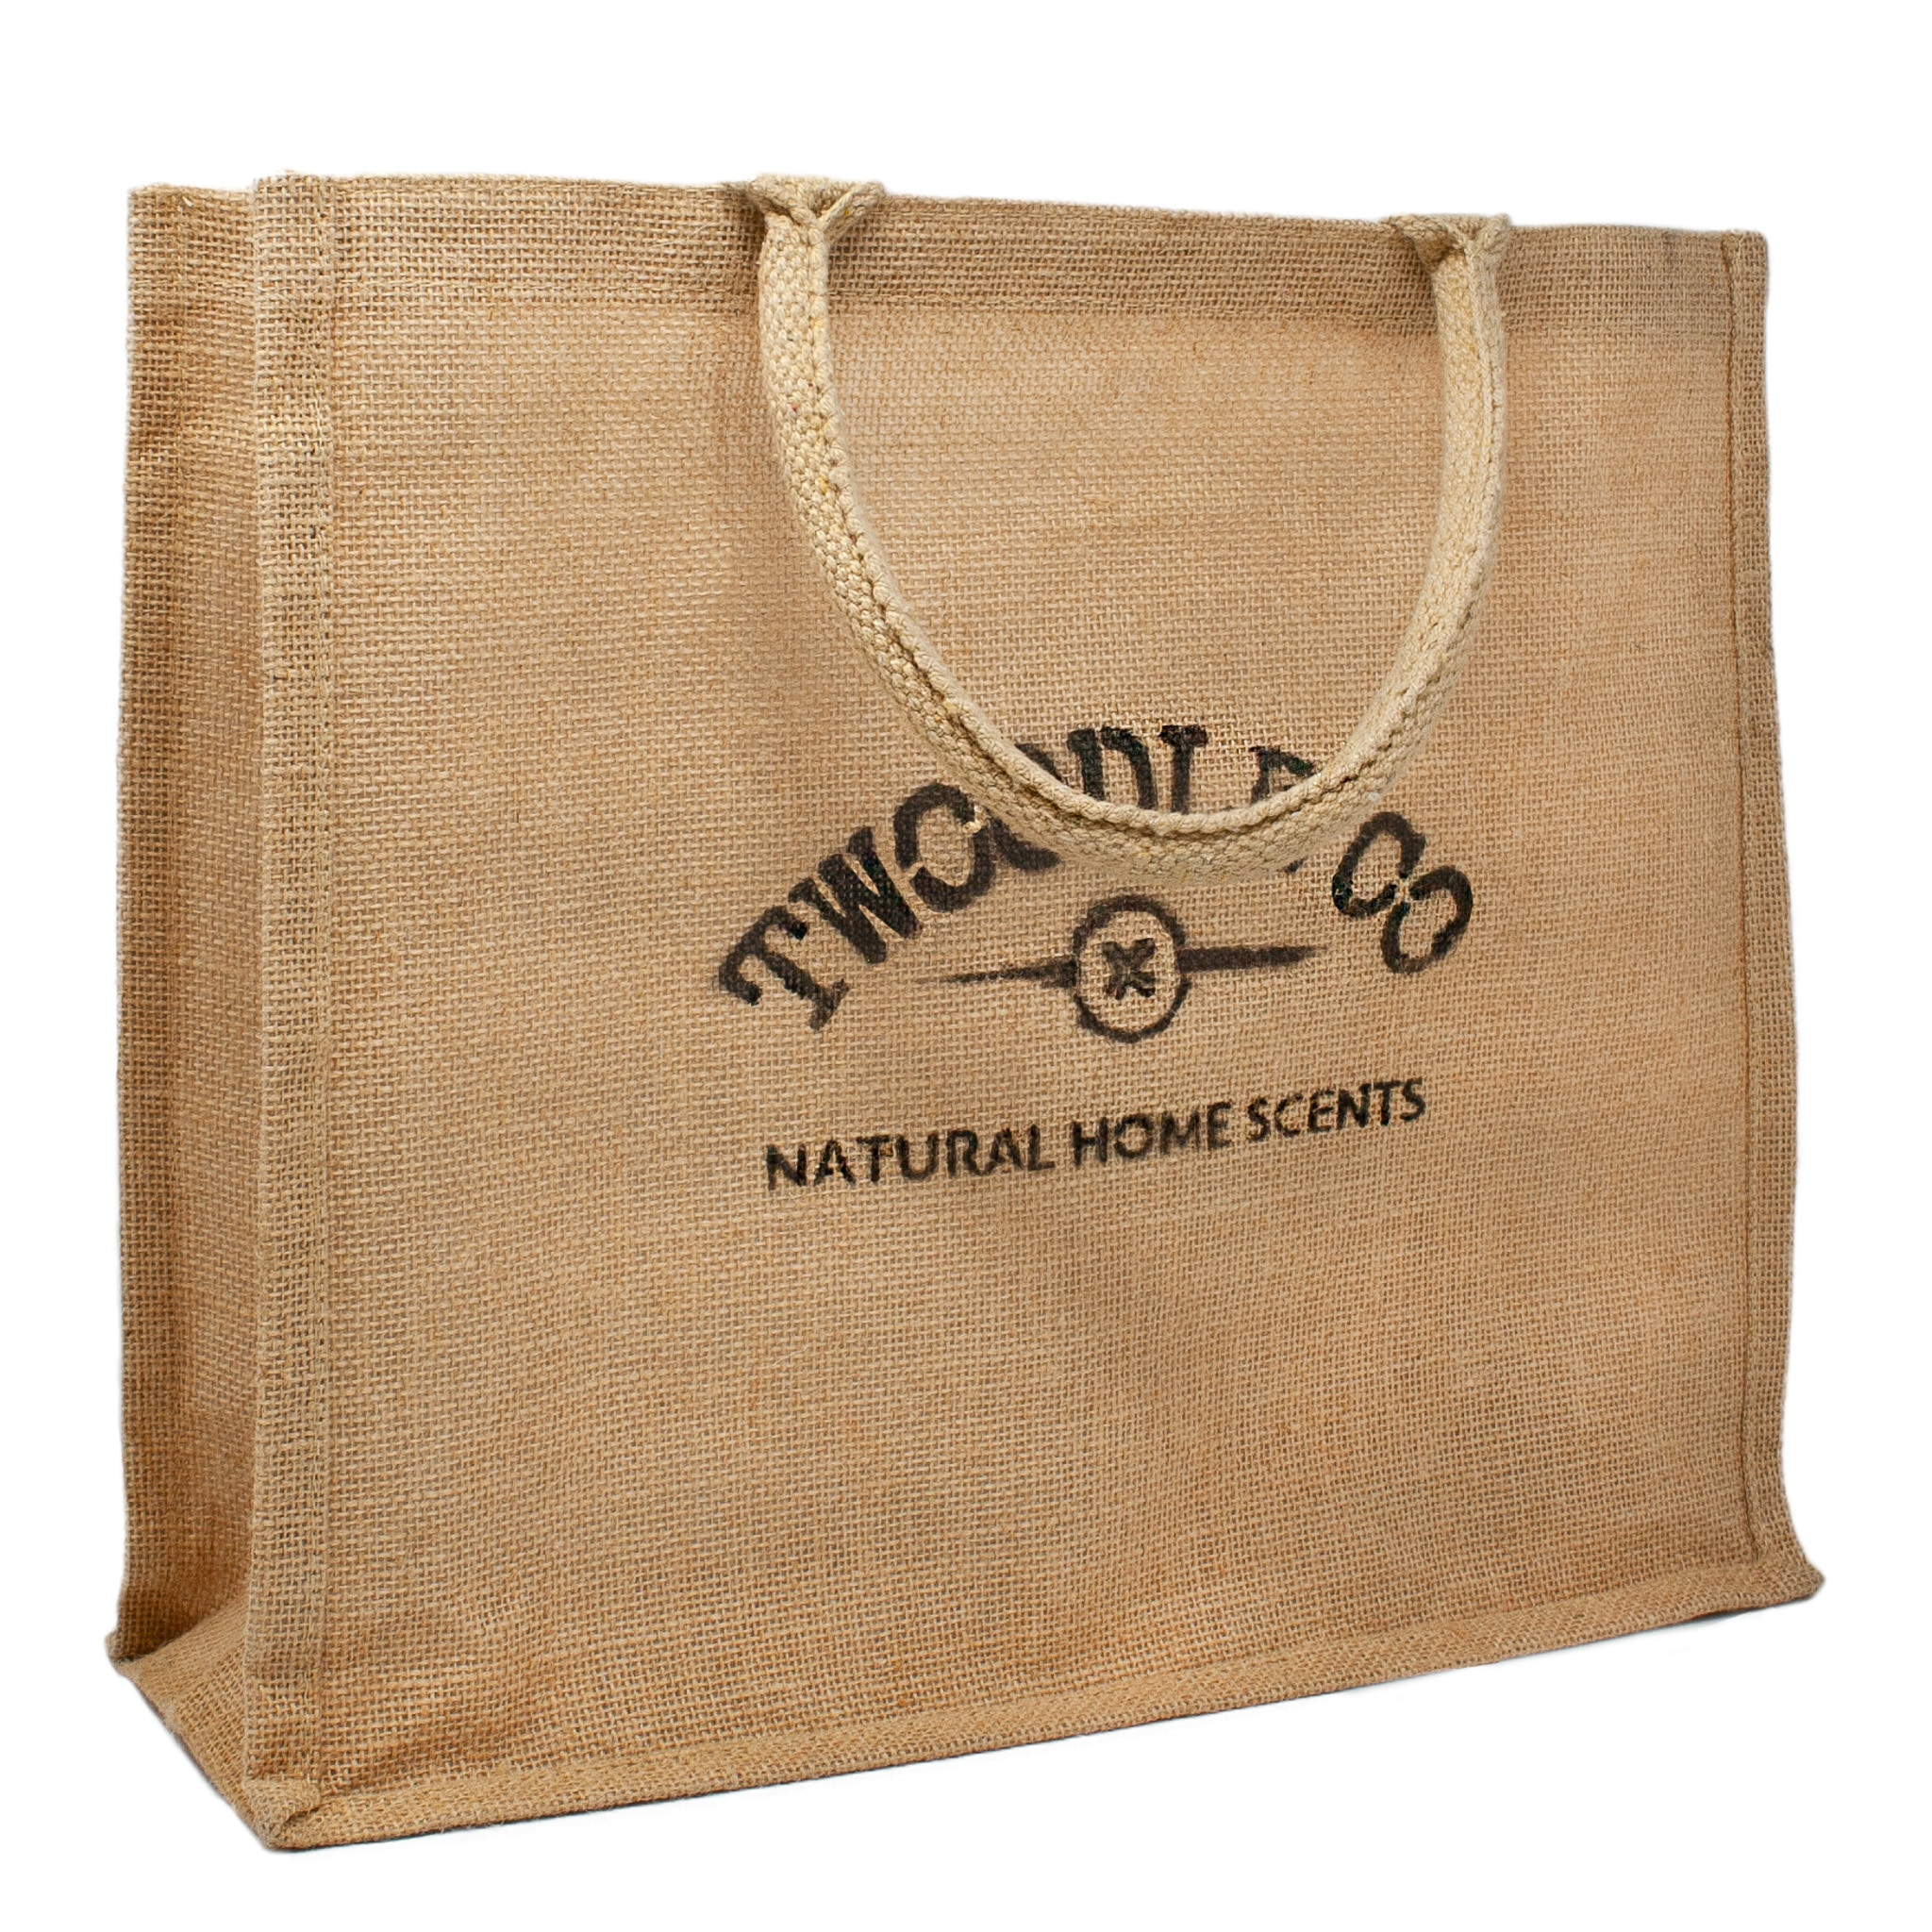 Eco friendly tote bag by Twoodle Co Natural Home Scents 3